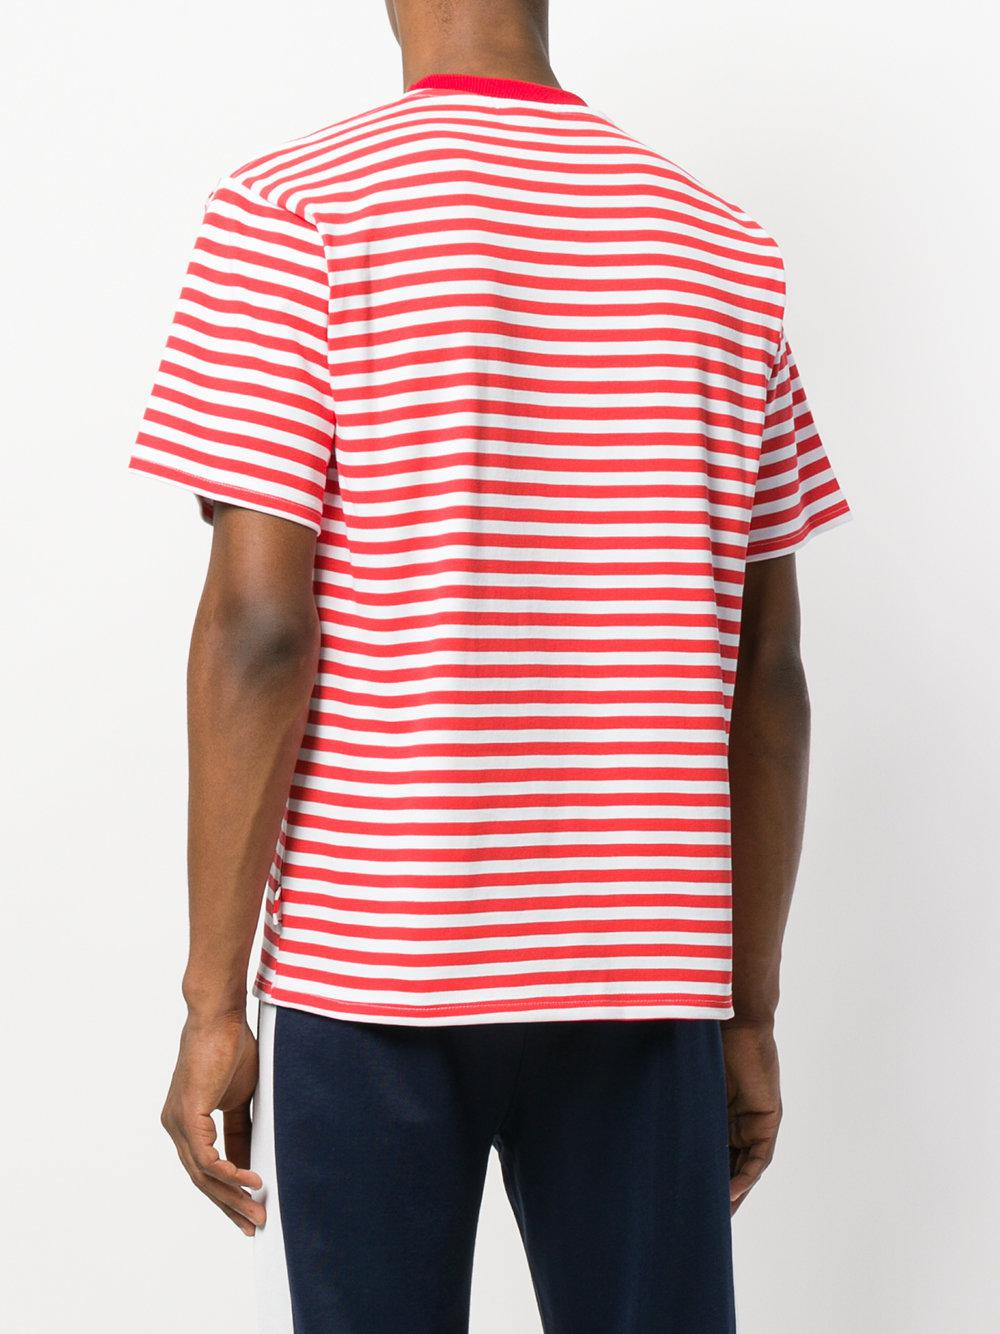 892ae7ee80 Gcds Striped T-shirt in Red for Men - Lyst